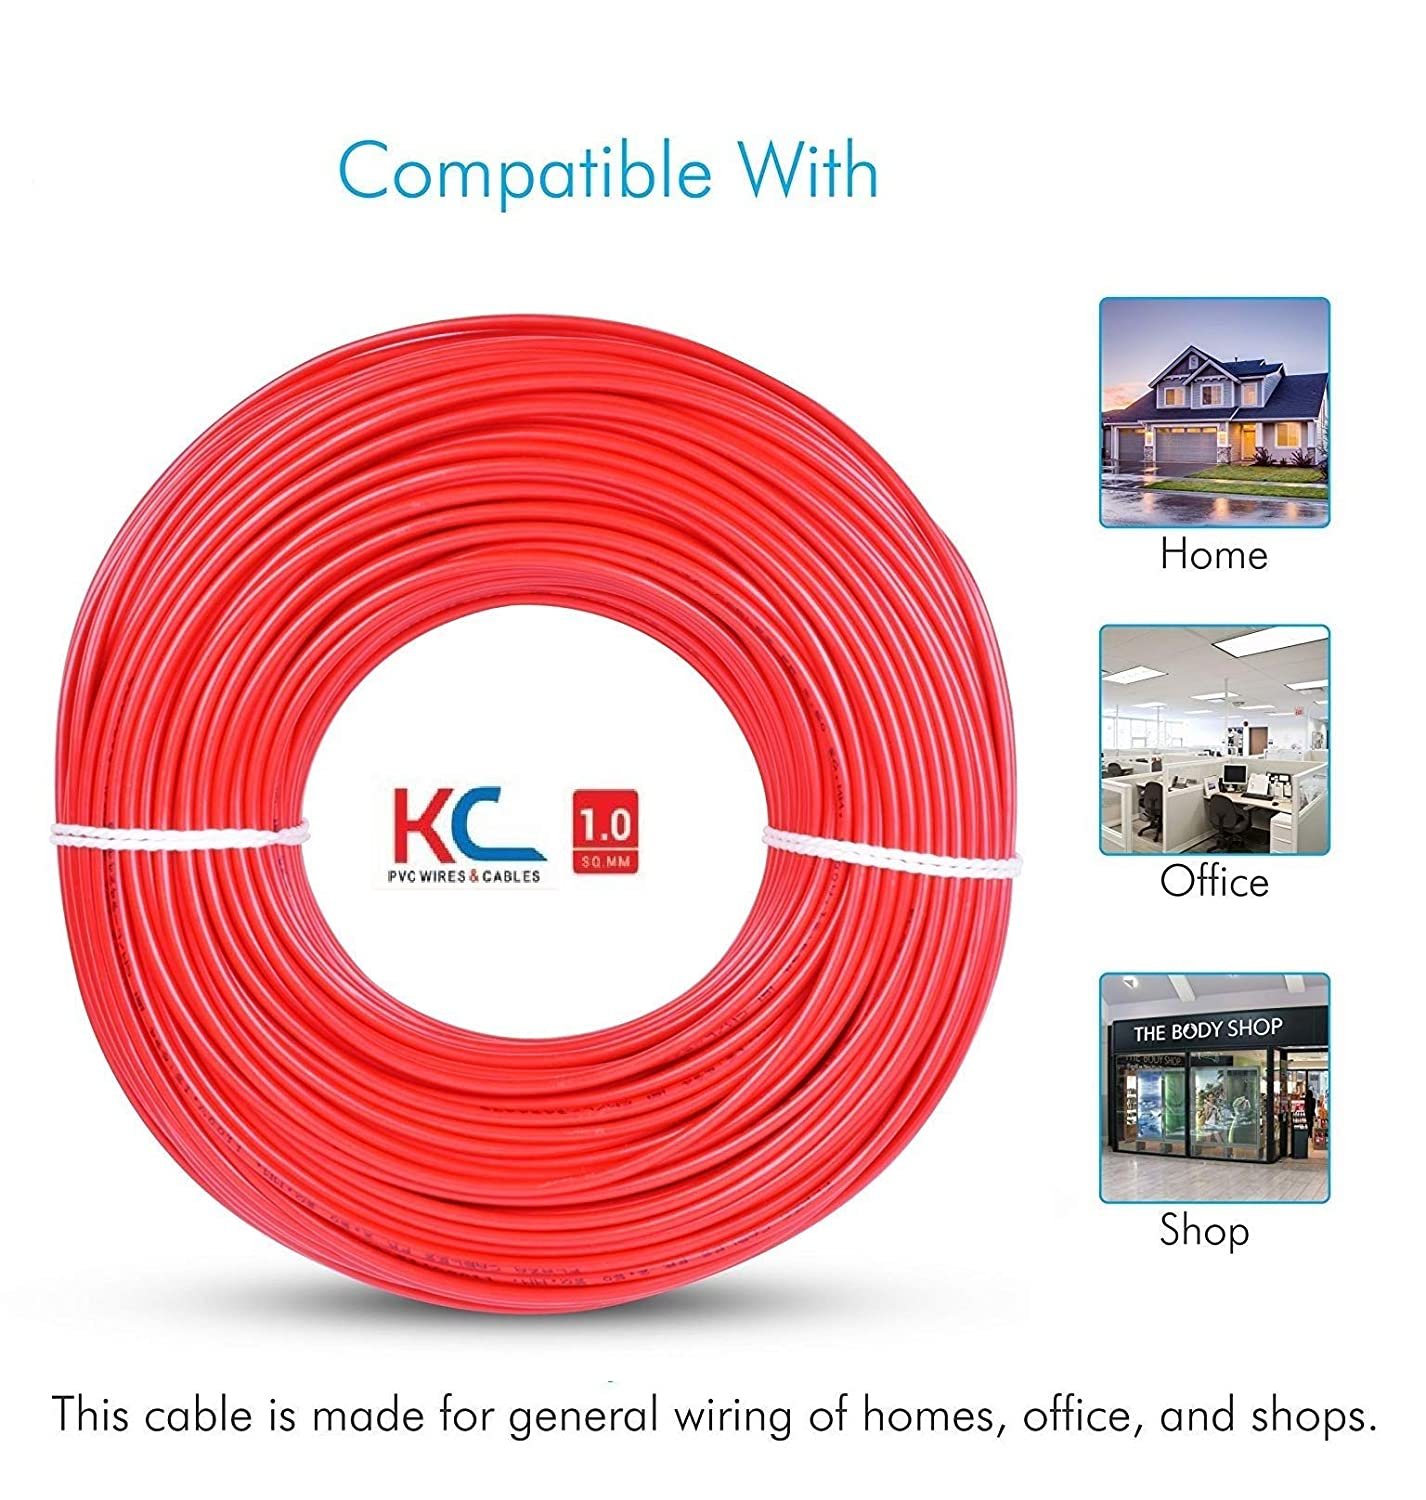 Kc Cab Copper Pvc Insulated Wire 90 M Coilred Home Wiring Wires Amazing Improvement